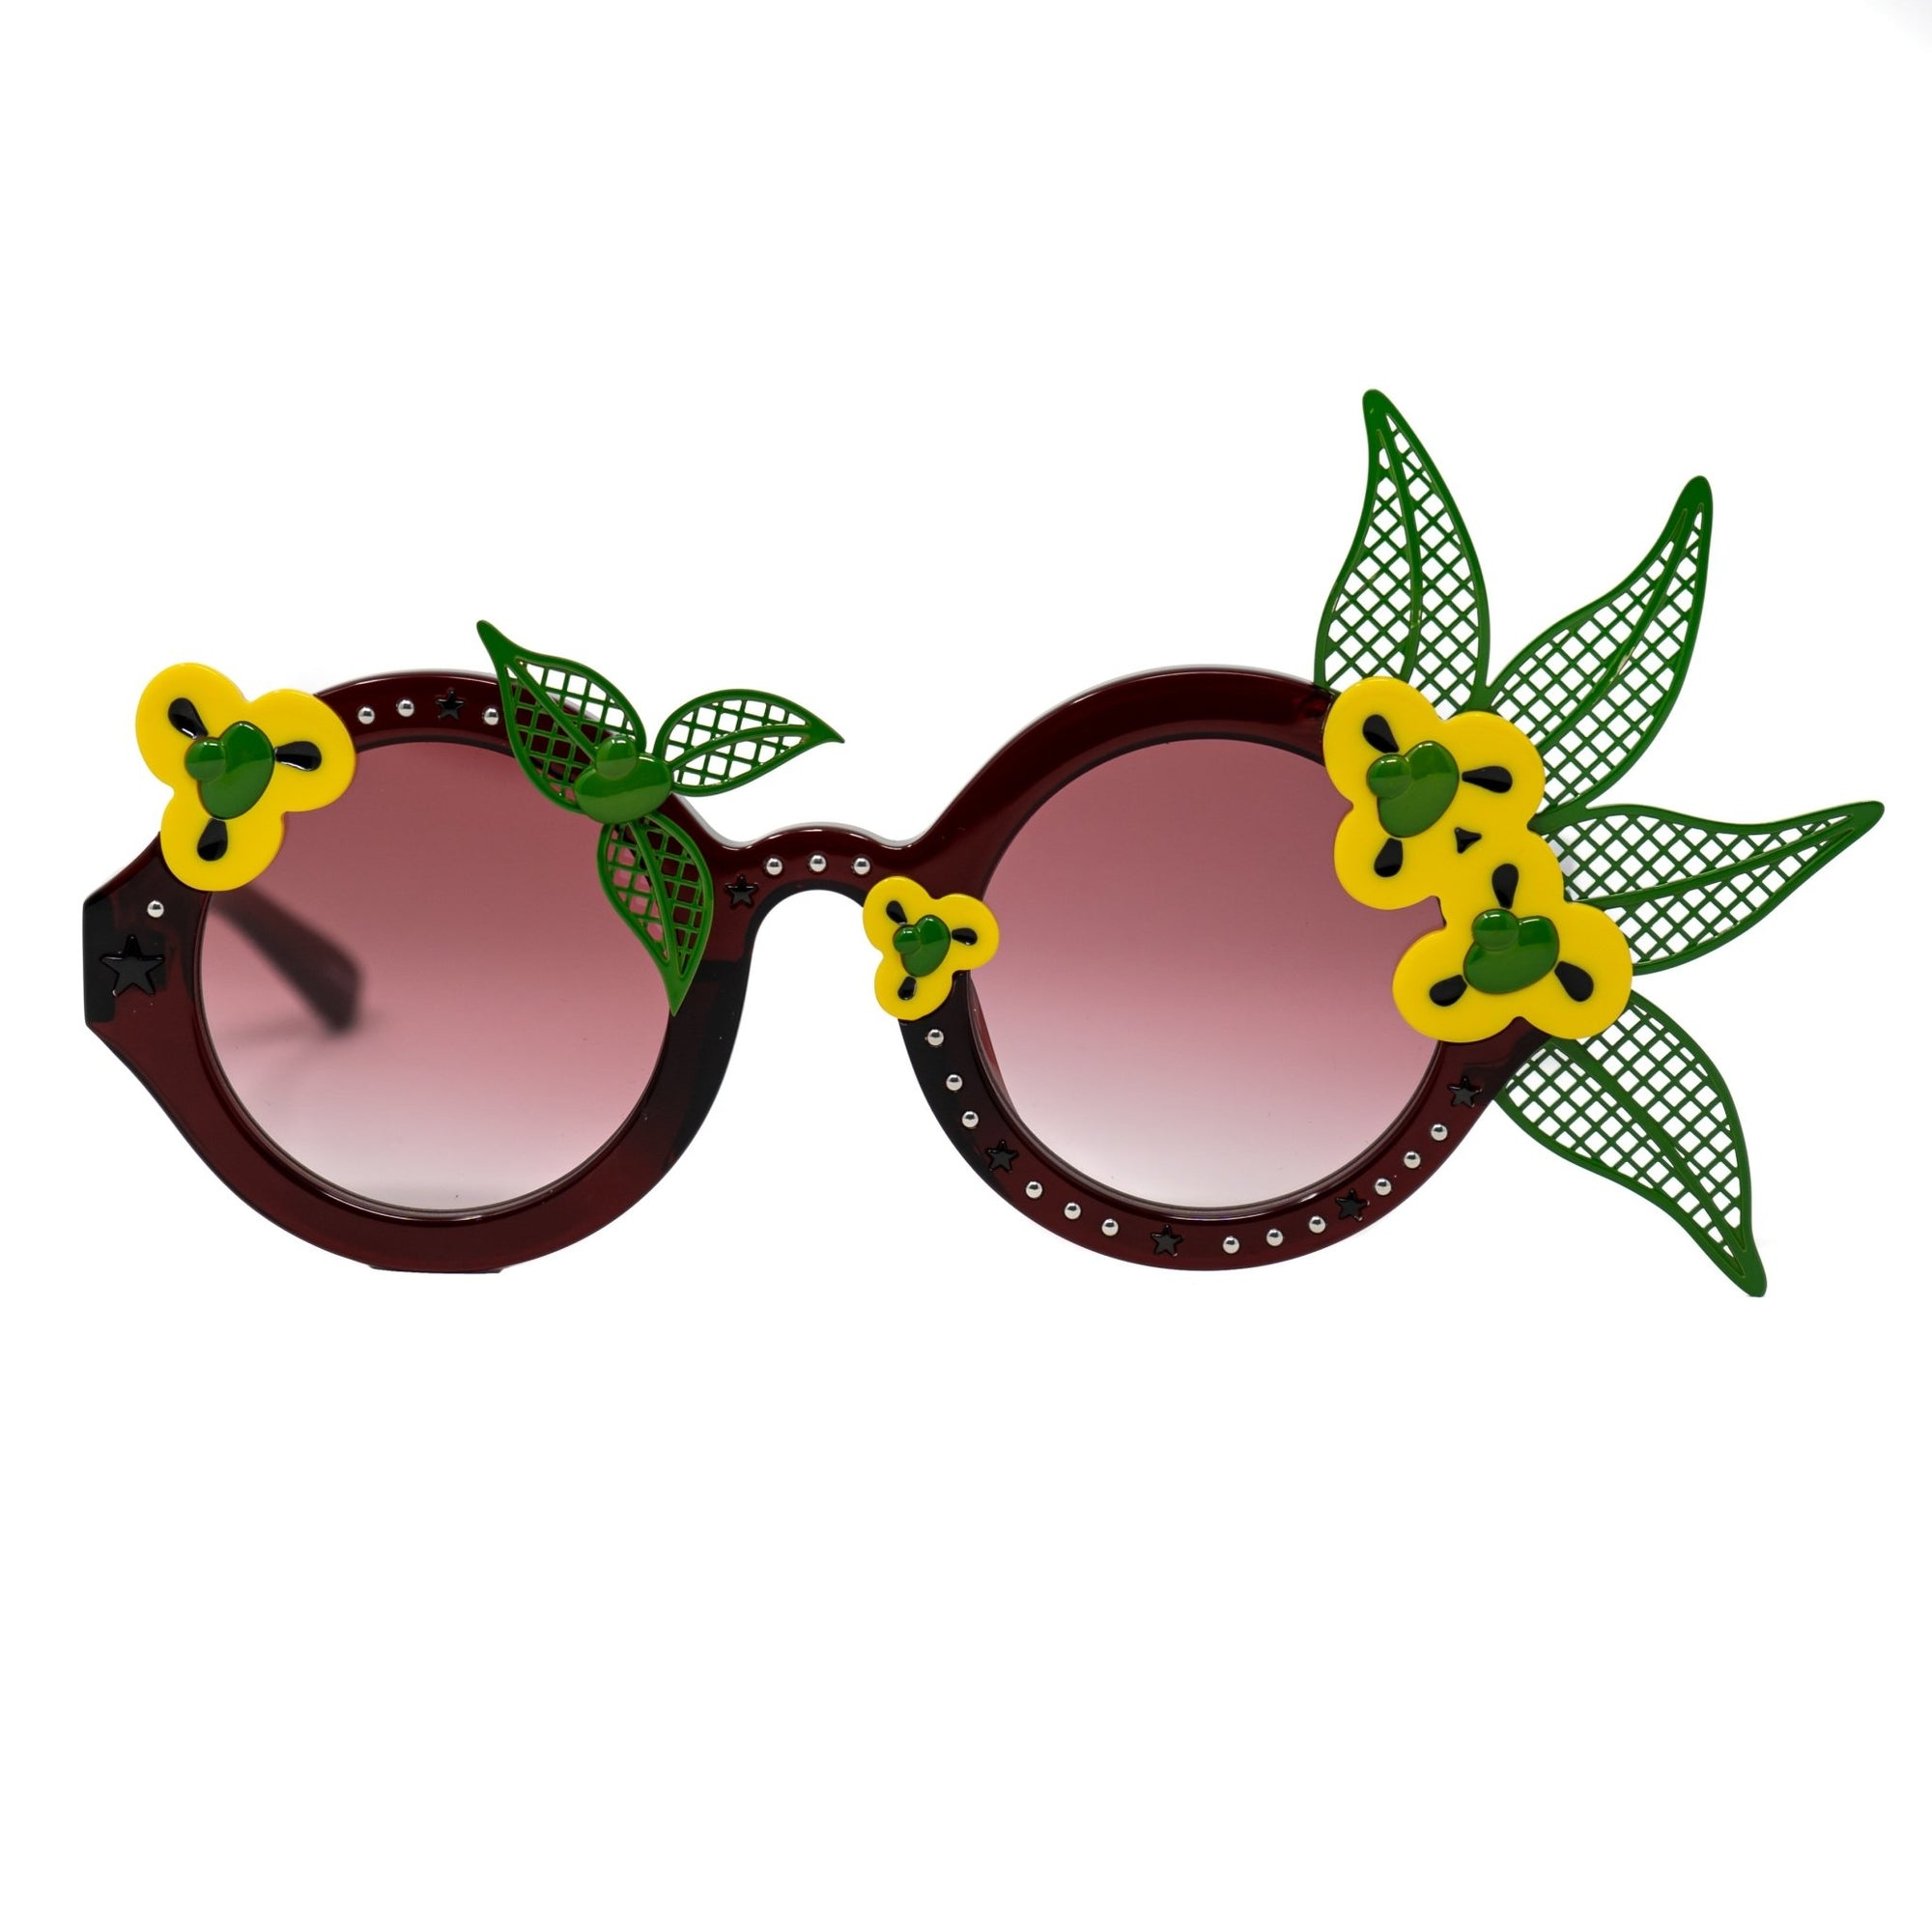 Amie Victoria Robertson Sunglasses Round Yellow and Red